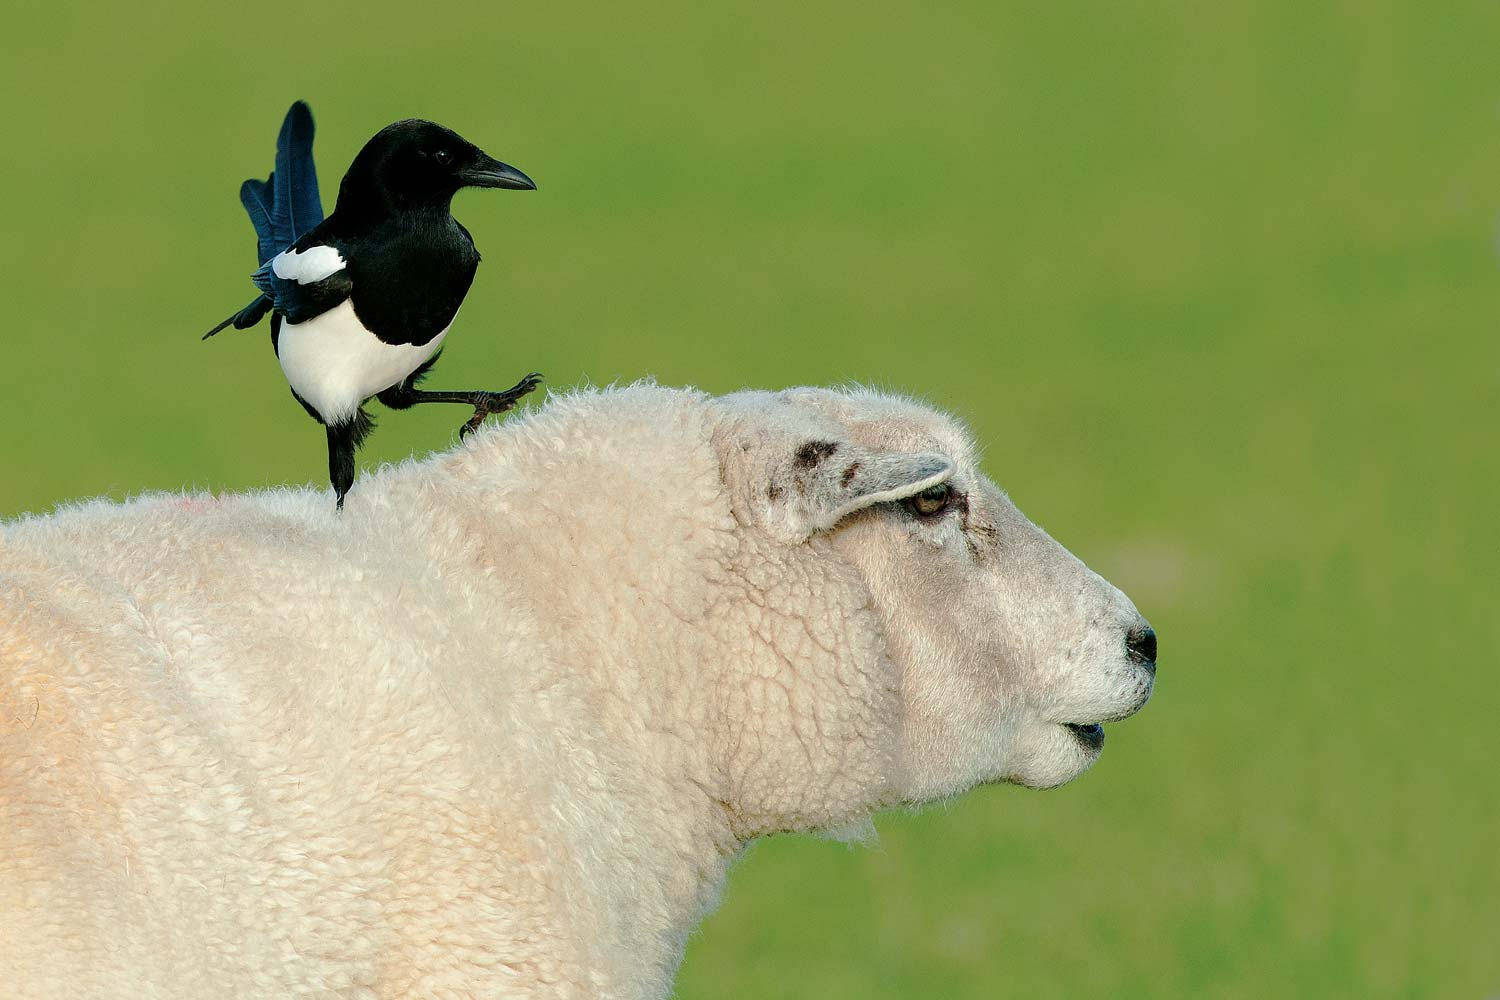 The Magpie and the Sheep